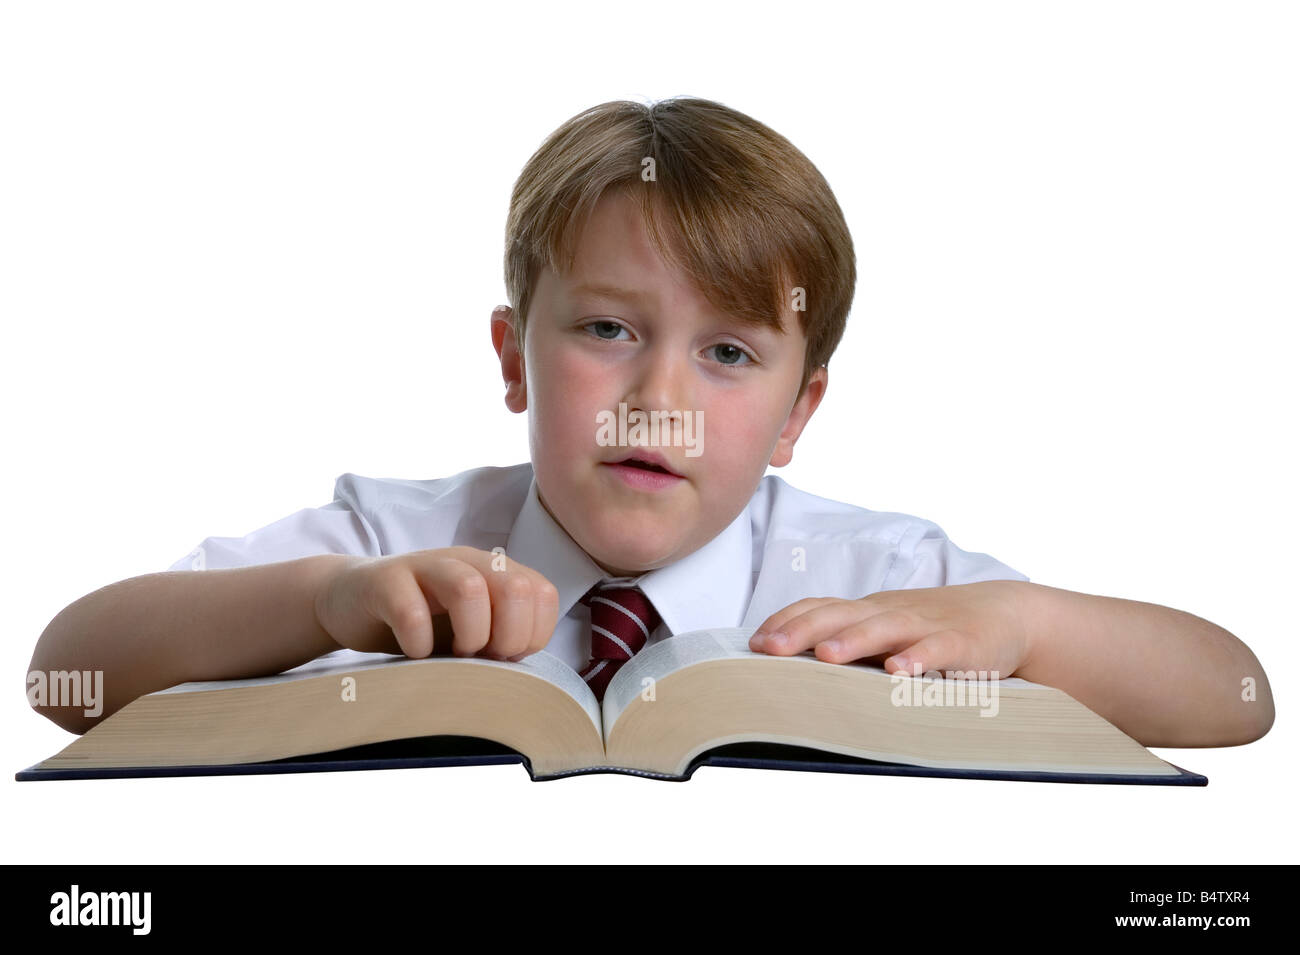 Cut out of a Schoolboy with a reference book looking at the camera - Stock Image